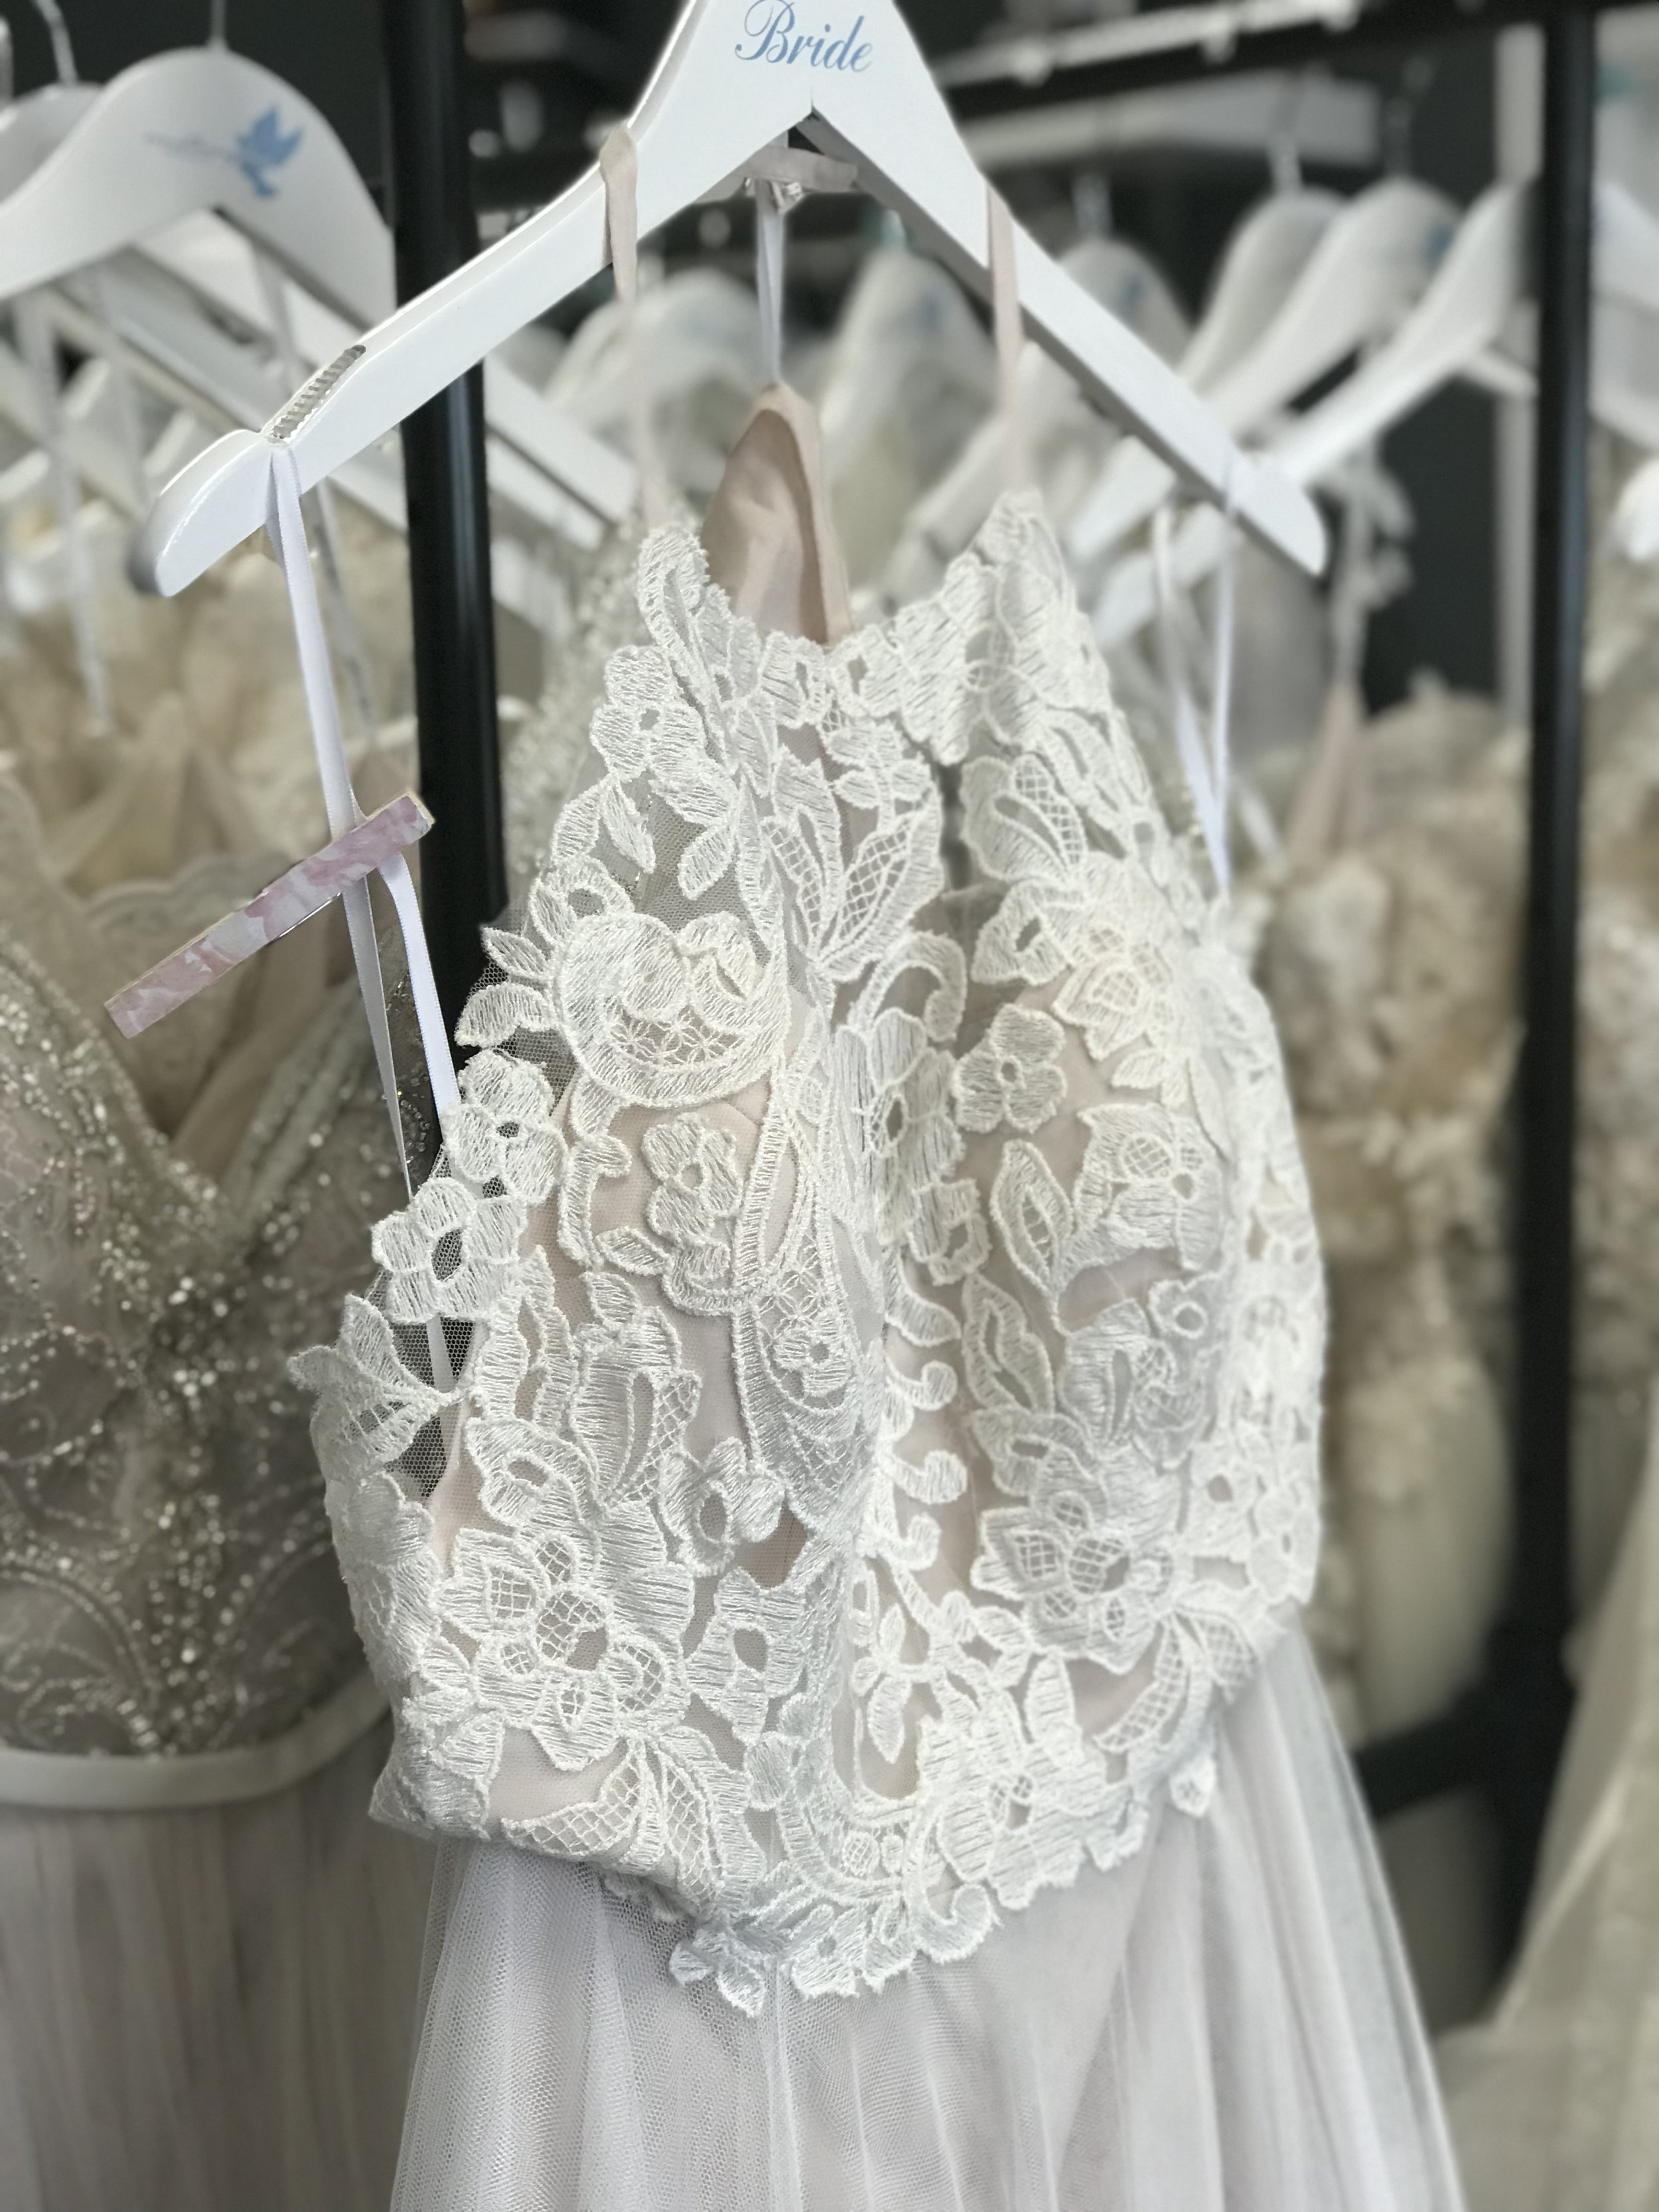 After we give you a tour of the boutique, you will be given pins so you can mark each dress you want to try on! Your consultant will grab the gowns you pin and bring them to your fitting room.